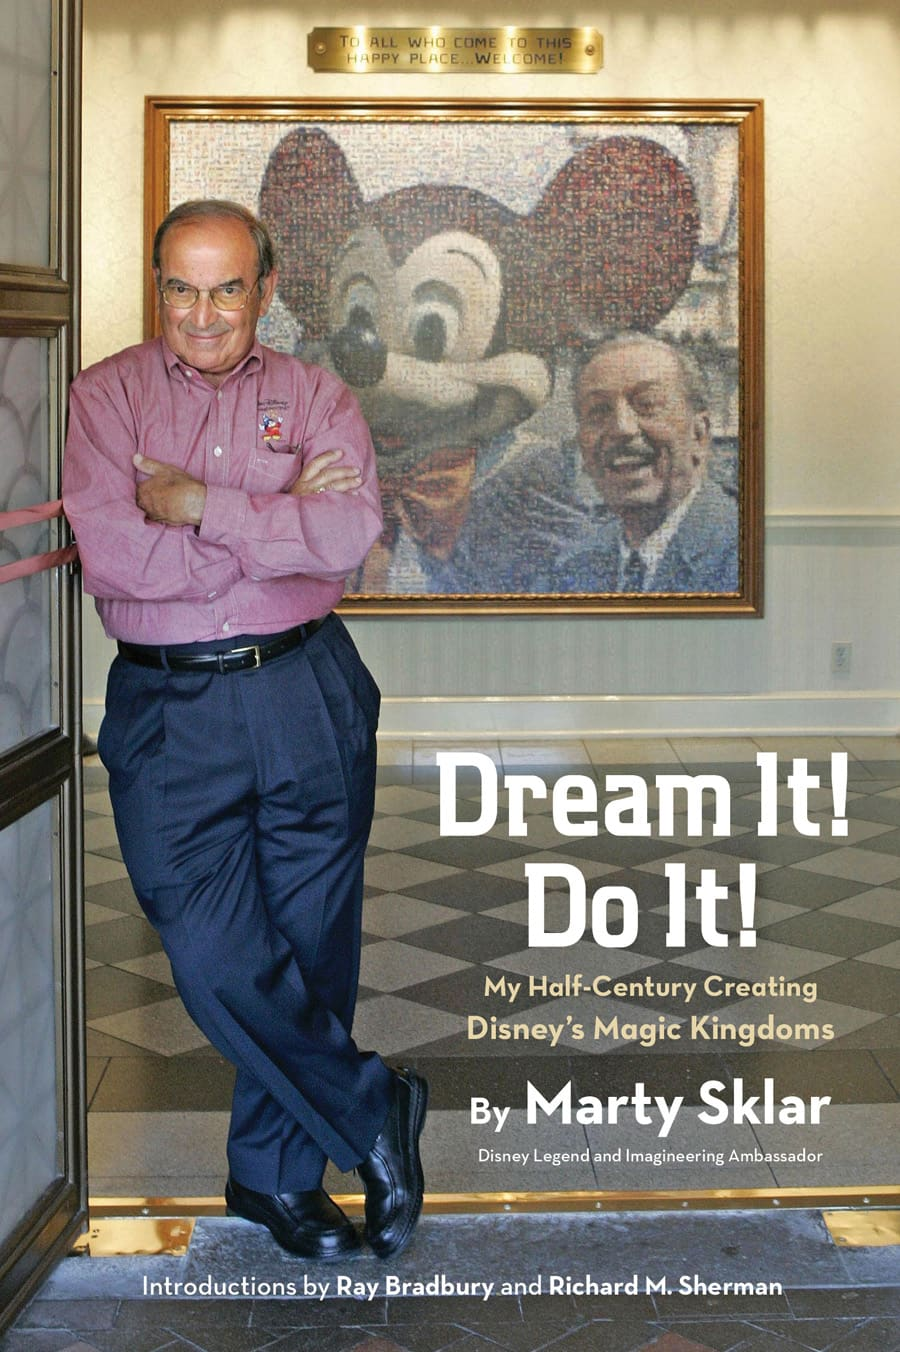 Interview with Marty Sklar, Disney Legend and Author of New Book, 'Dream It! Do It!: My Half-Century Creating Disney's Magic Kingdoms'